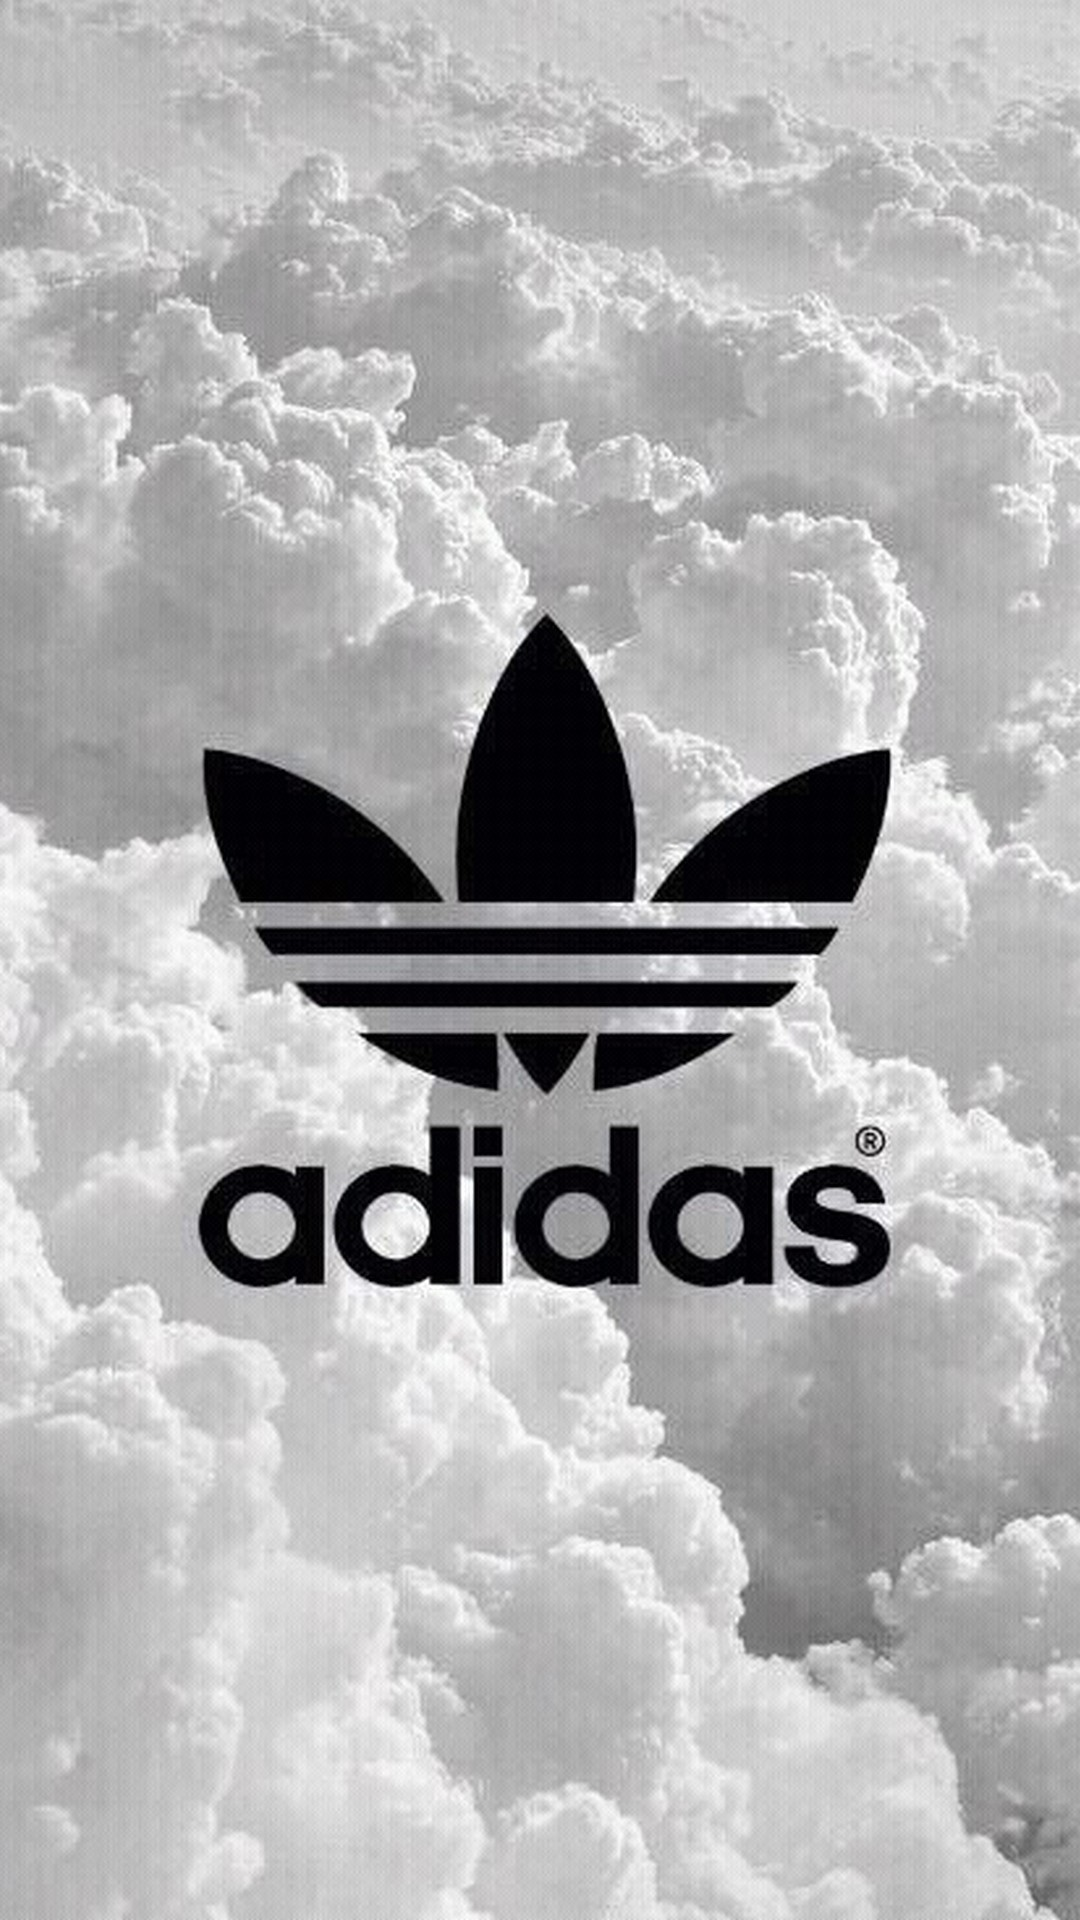 Black Adidas wallpaper for iPhone